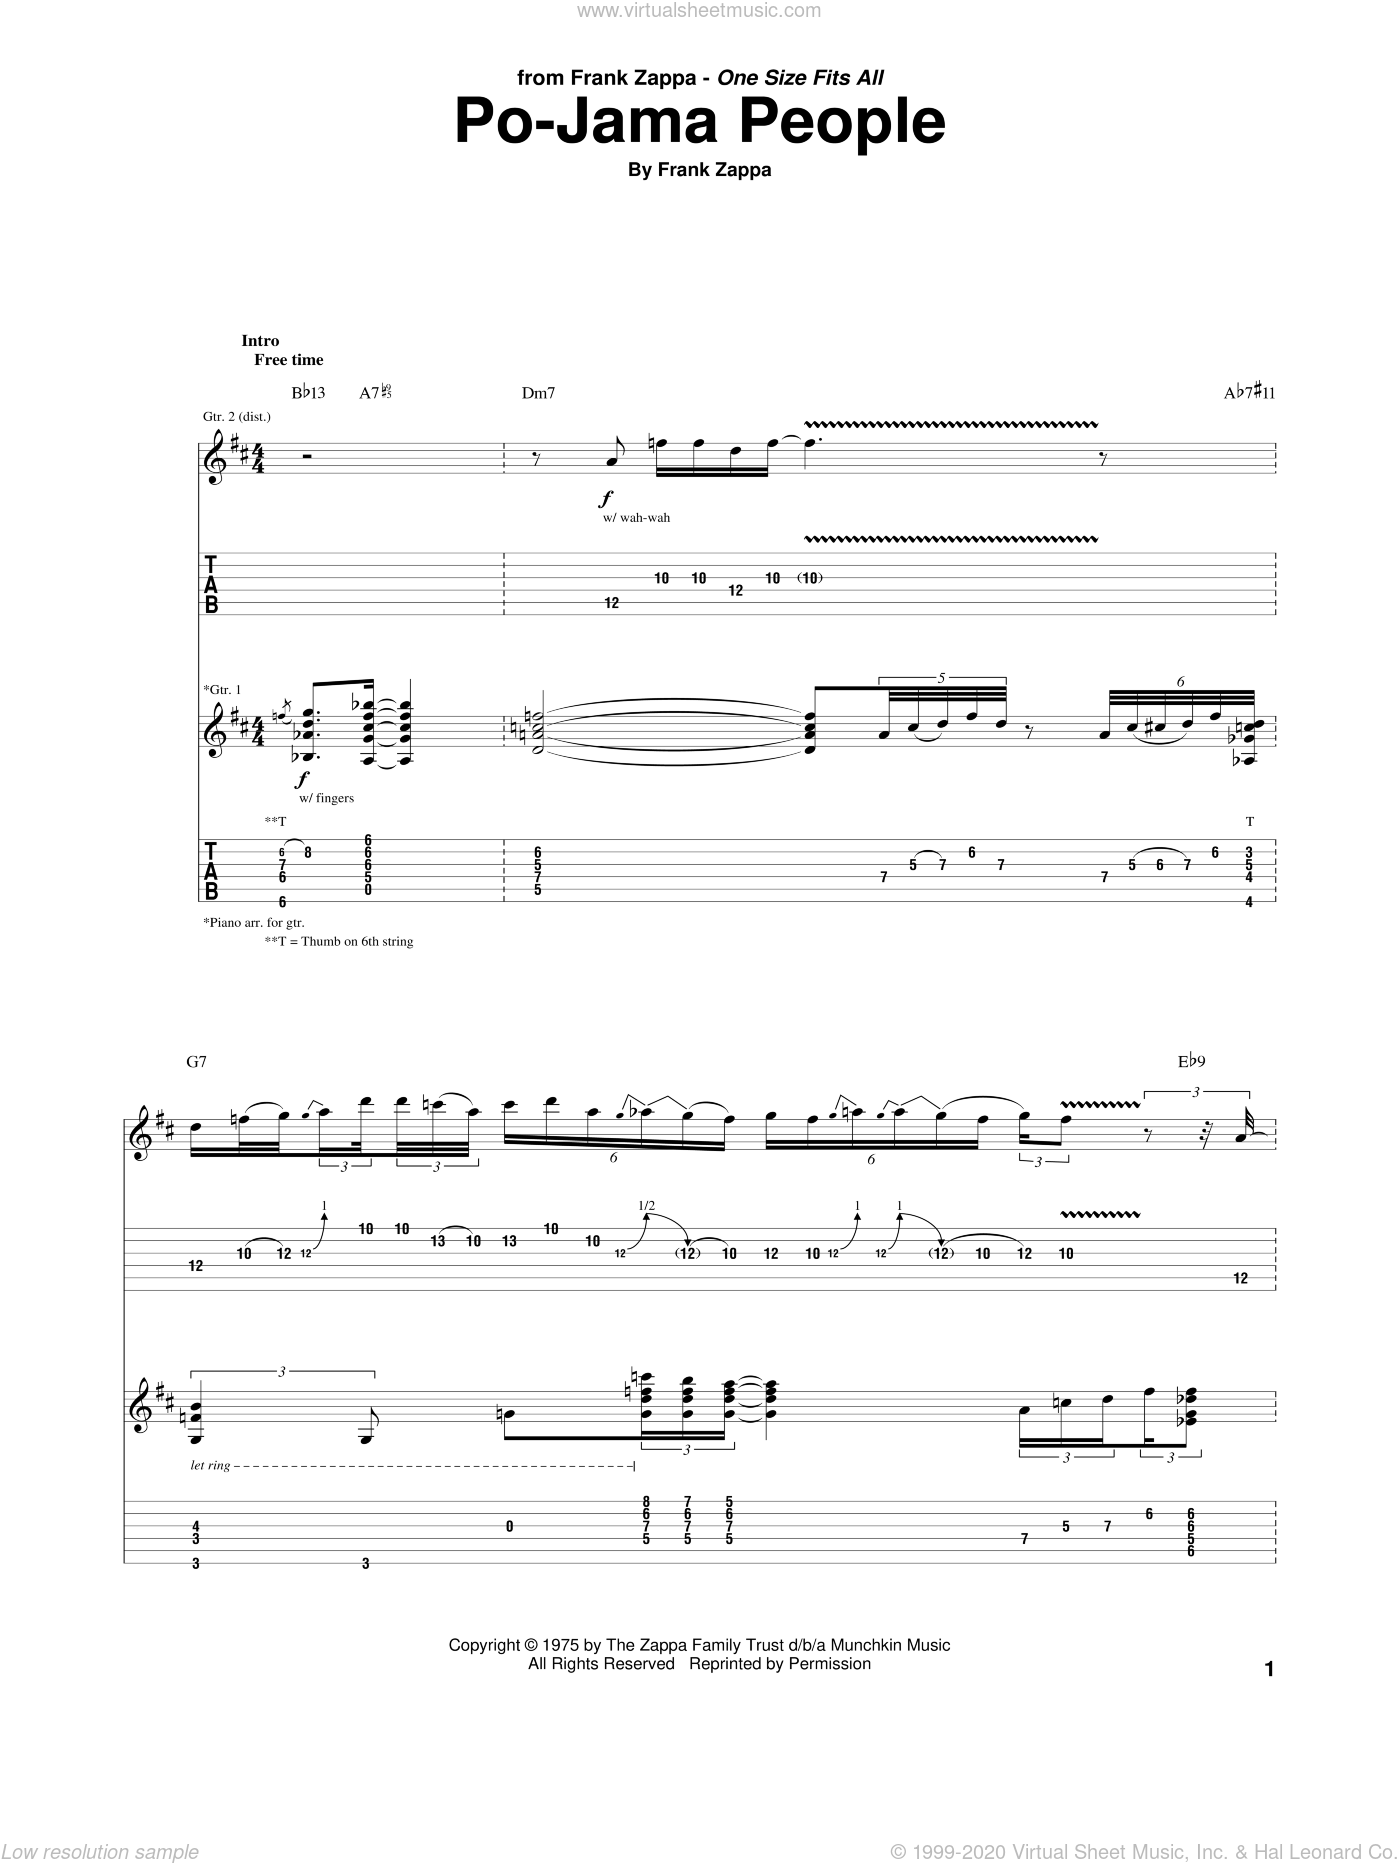 Po-Jama People sheet music for guitar (tablature) by Frank Zappa